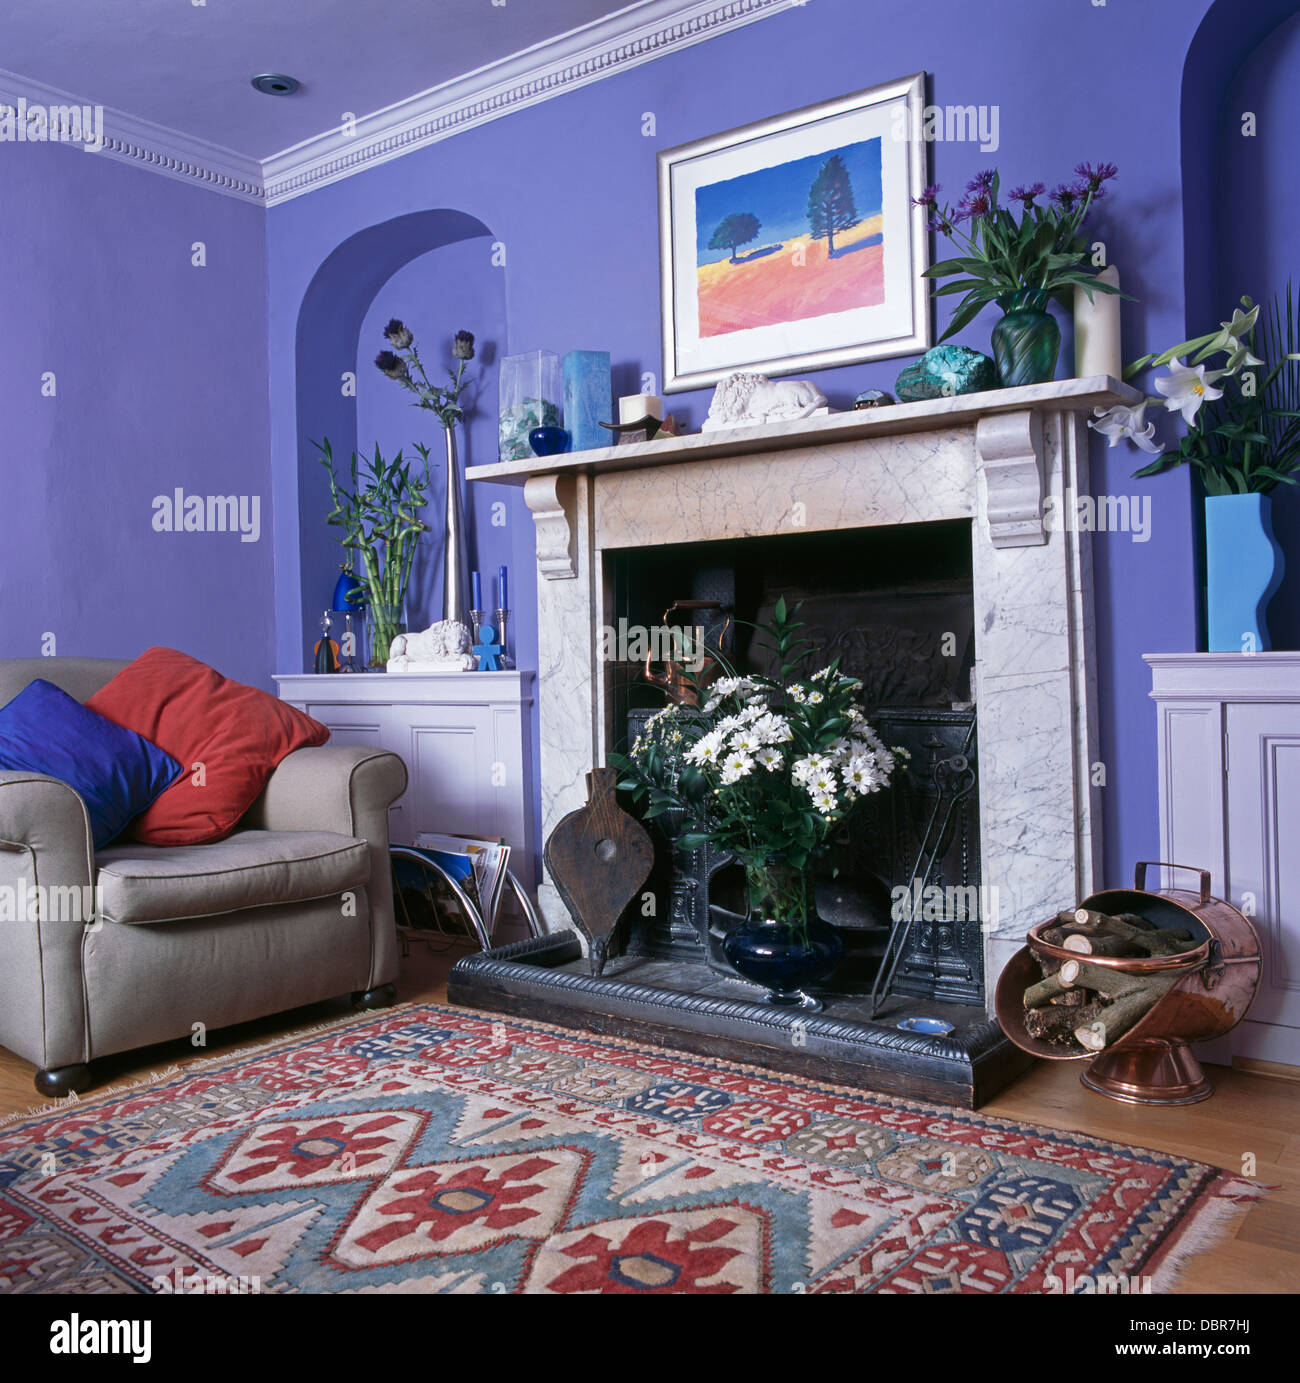 patterned rug in front of marble fireplace in blue living room